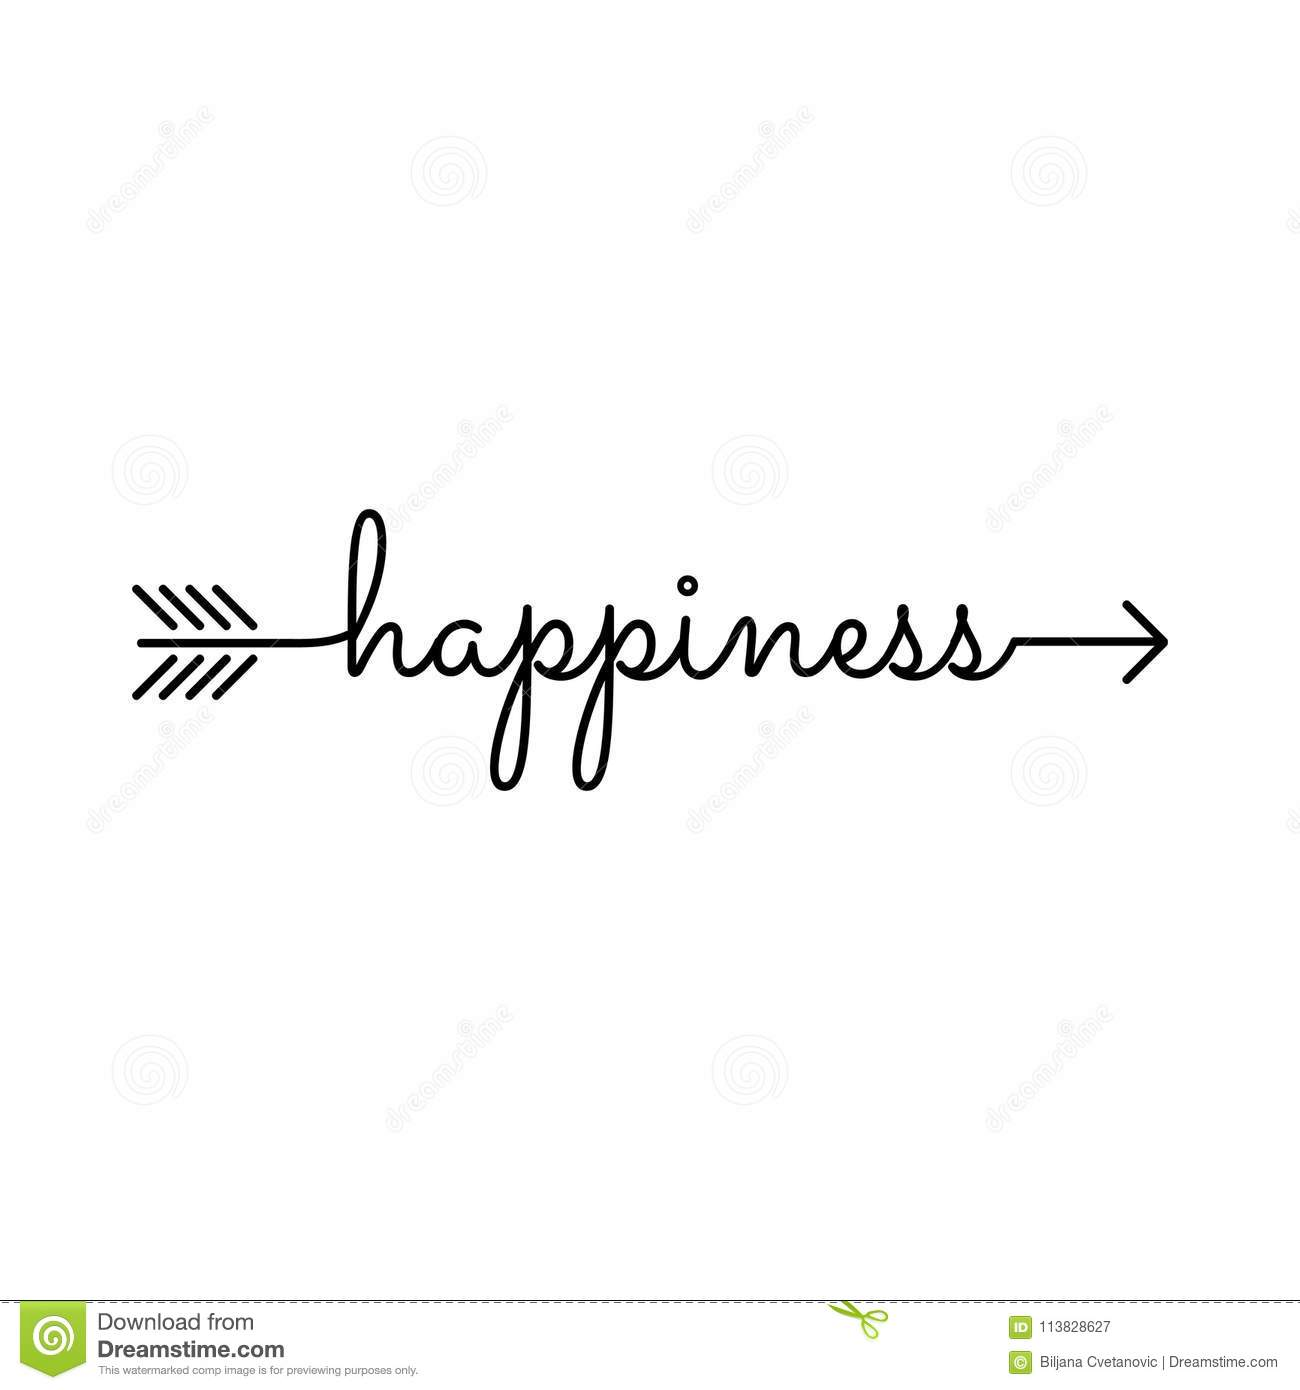 A Word Of Happiness: Happiness Arrow Stock Vector. Illustration Of Alphabet